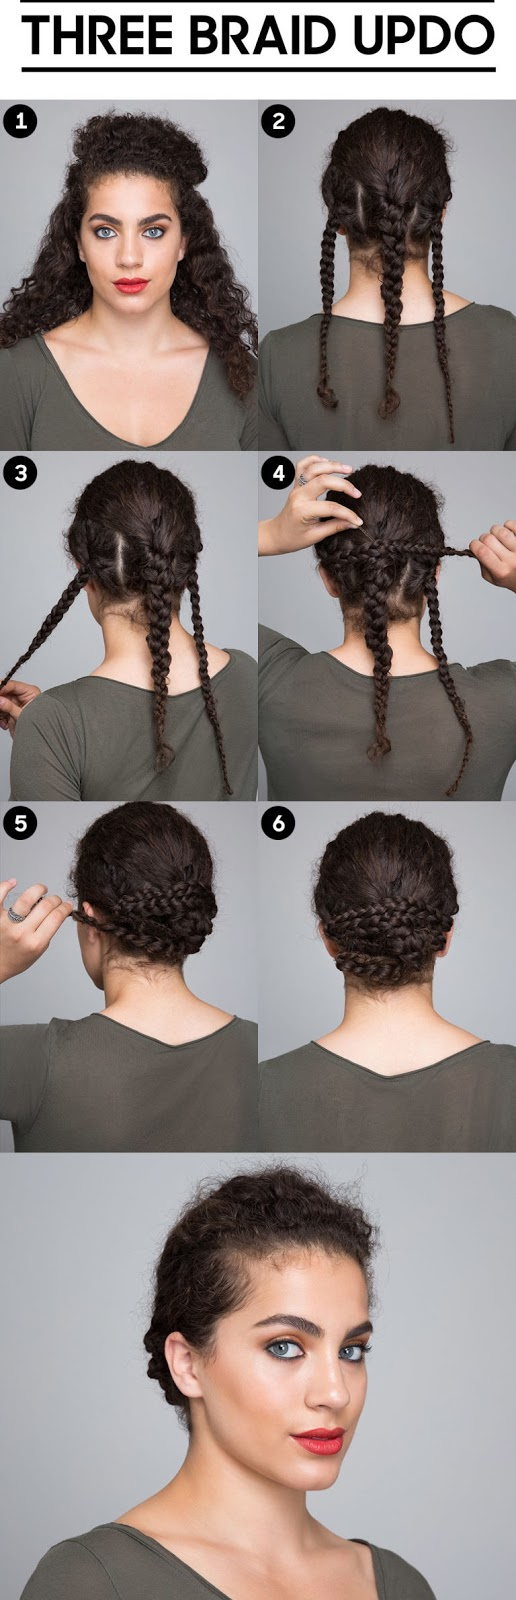 Three braid updo for curly hair